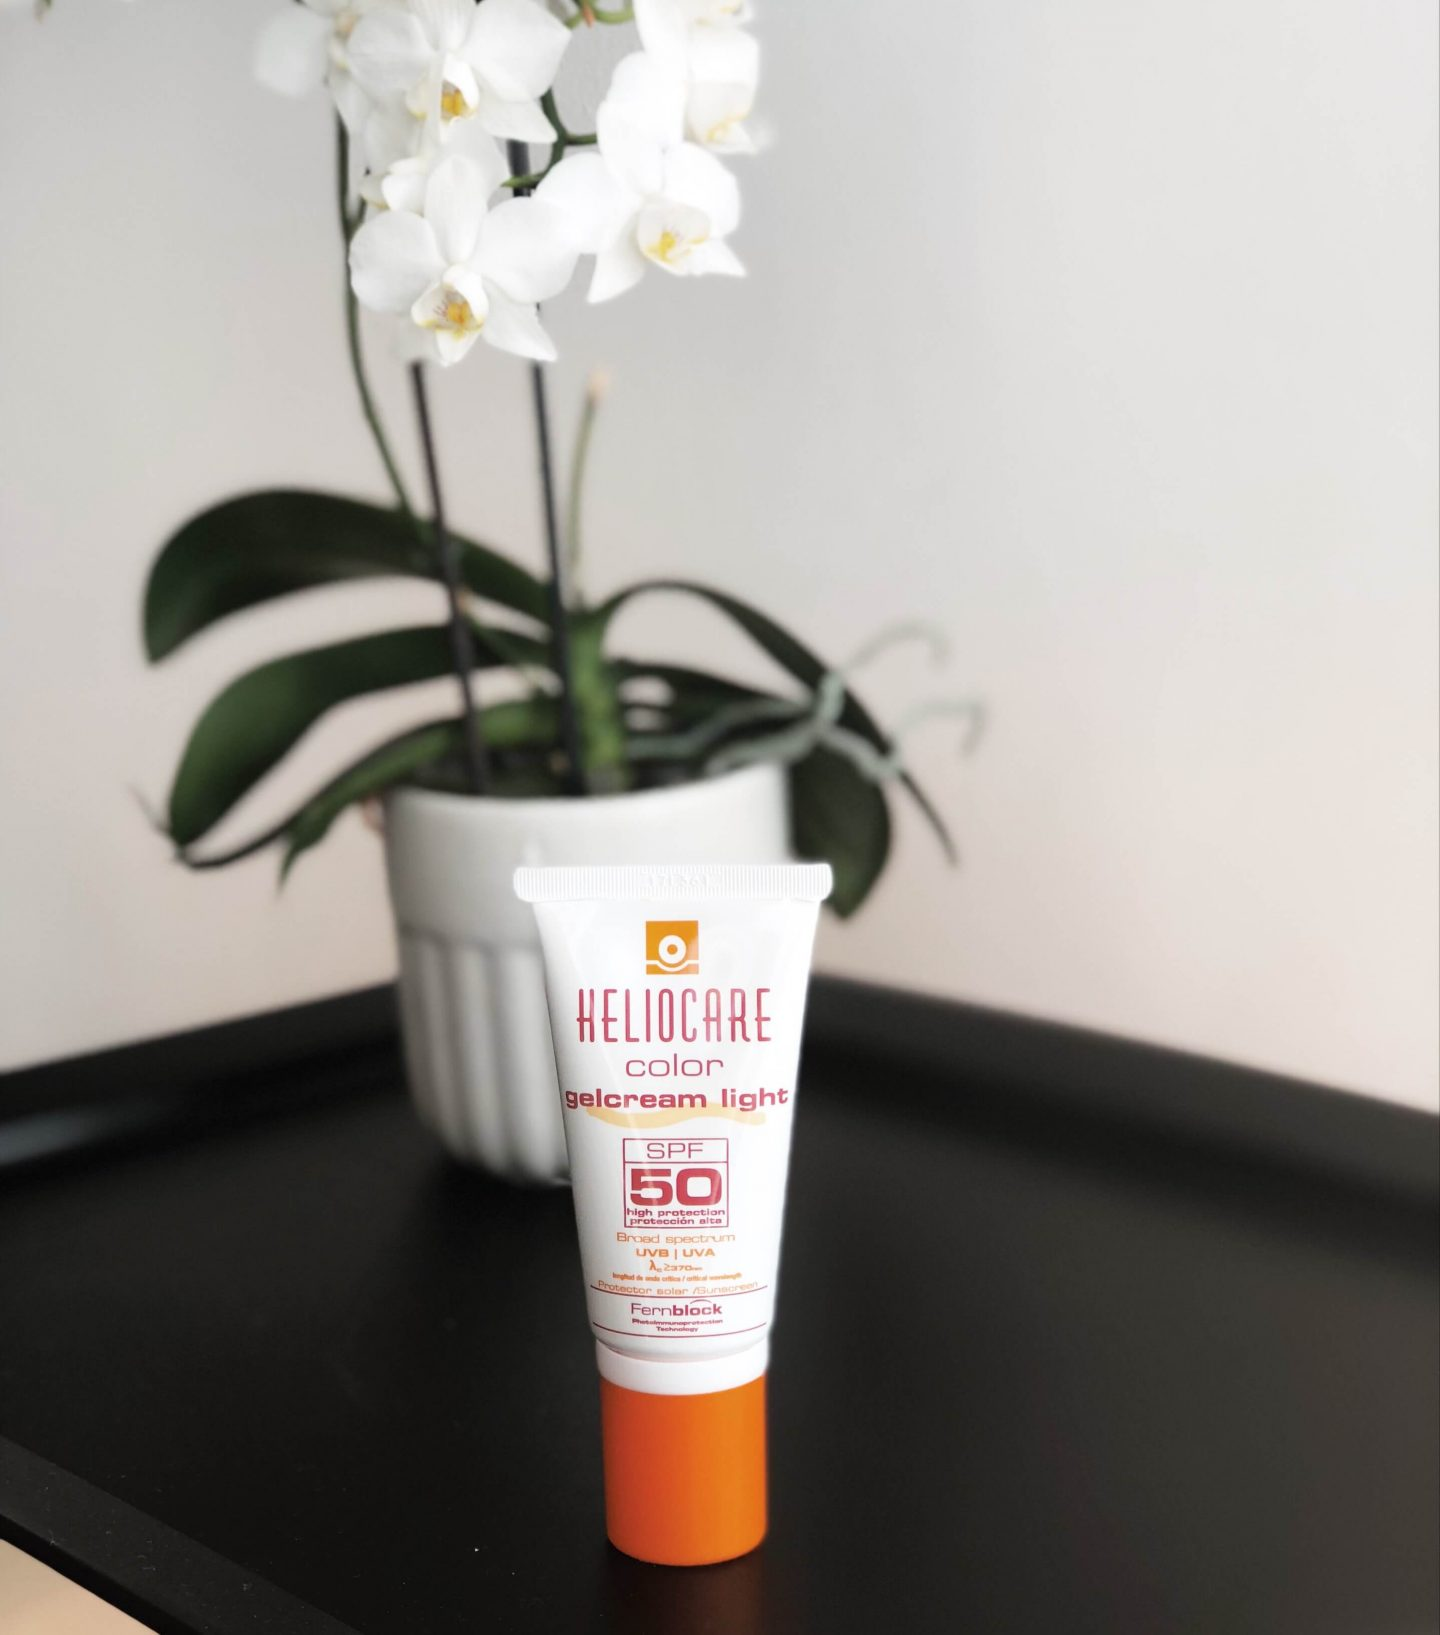 Heliocare sunscreen gelcream topknotch blog south africa